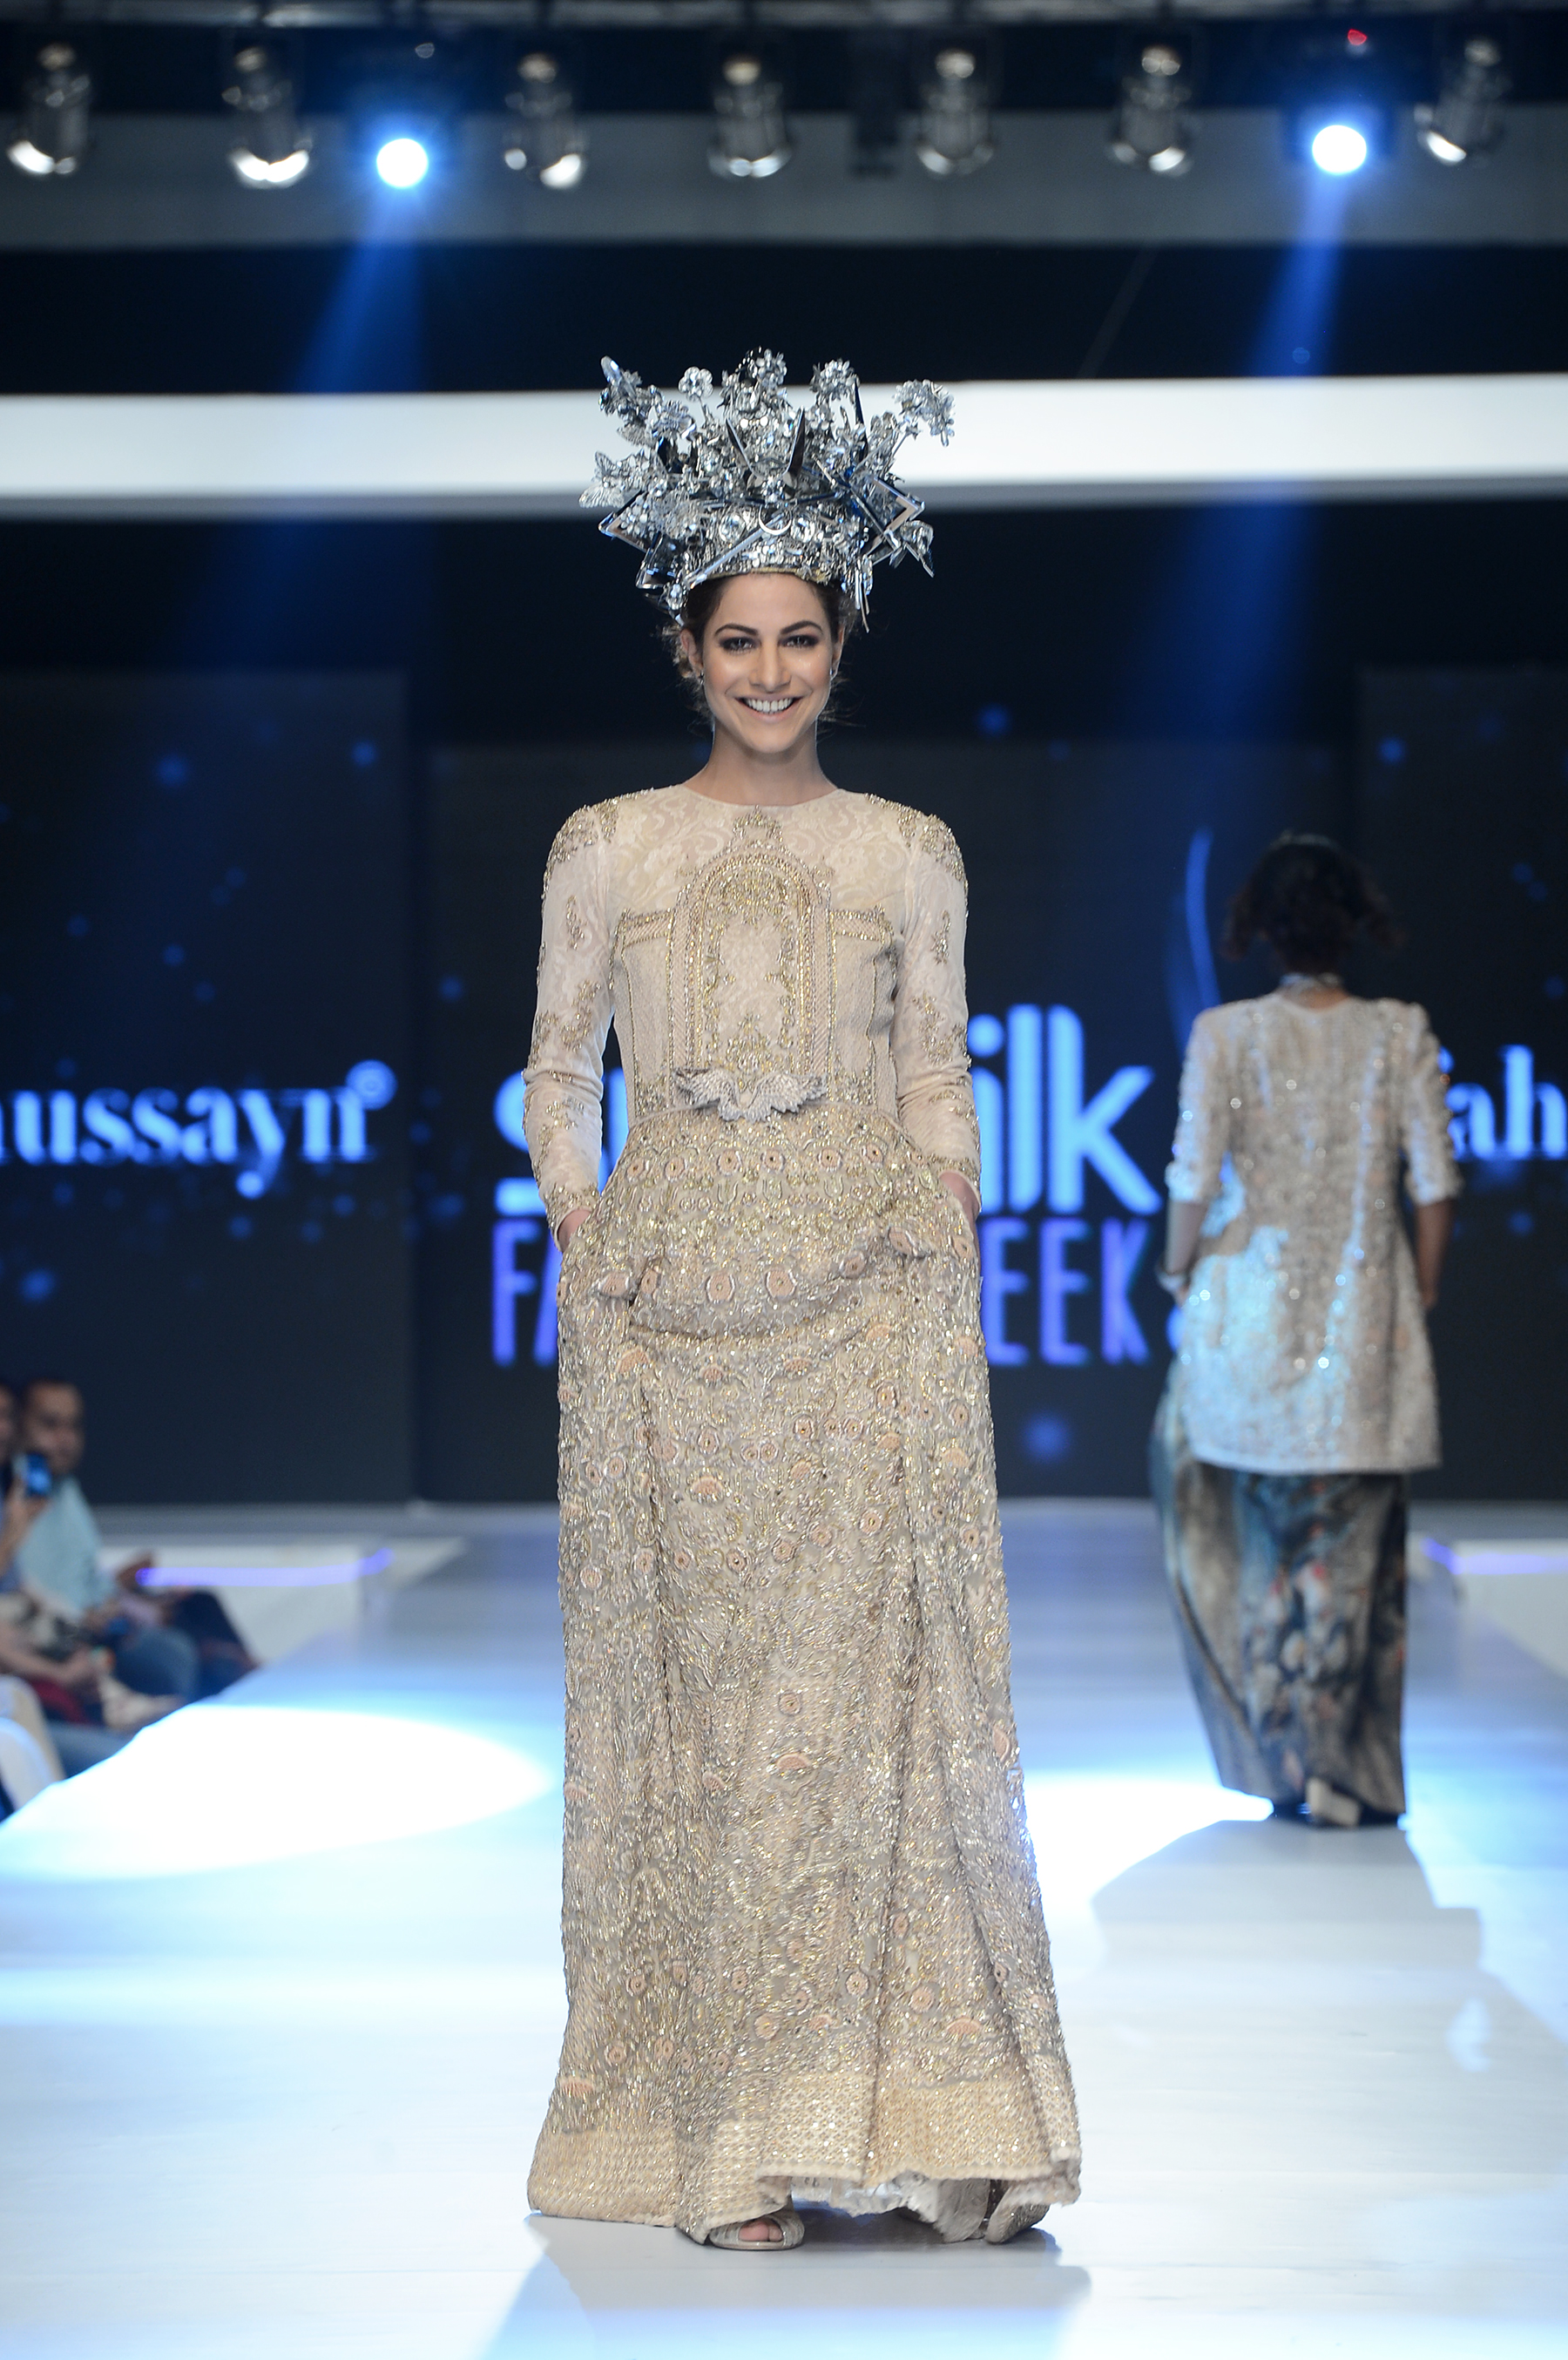 Fahad Hussayn - Photography by Faisal Farooqui and his team at Dragonfly